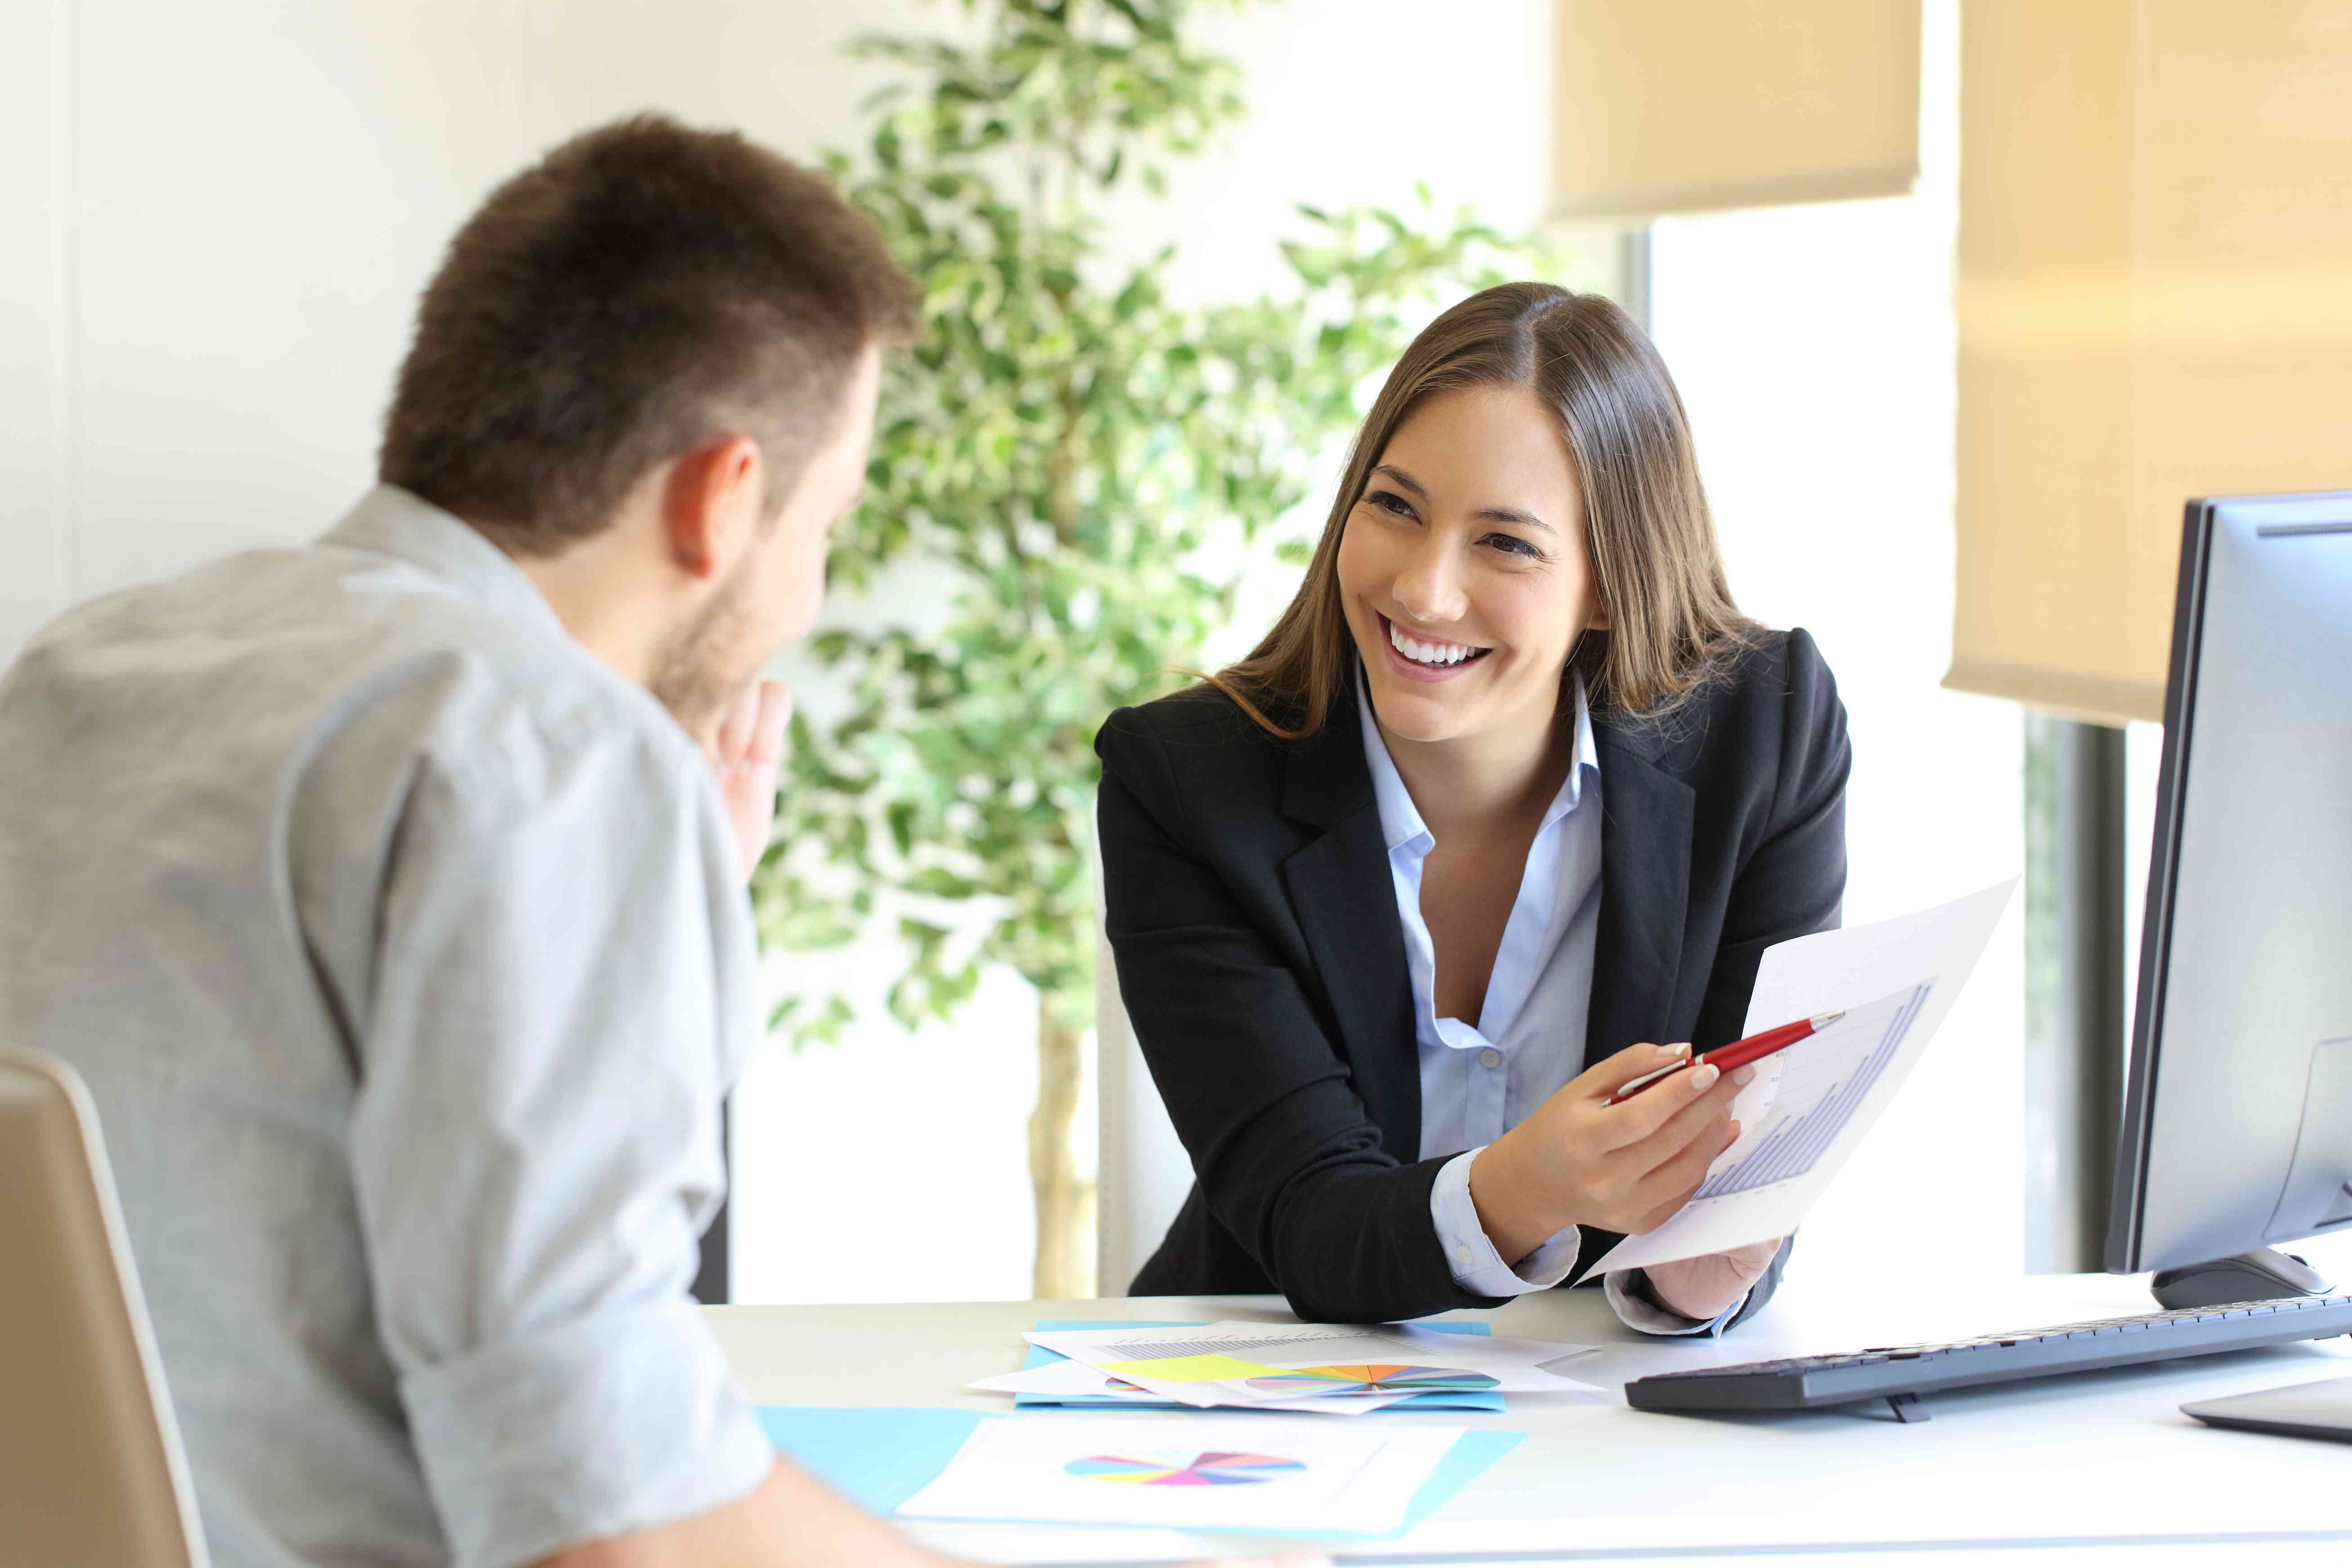 Smiling woman in HR with computer and paper telling male employee that their employer plan allows Roth contributions